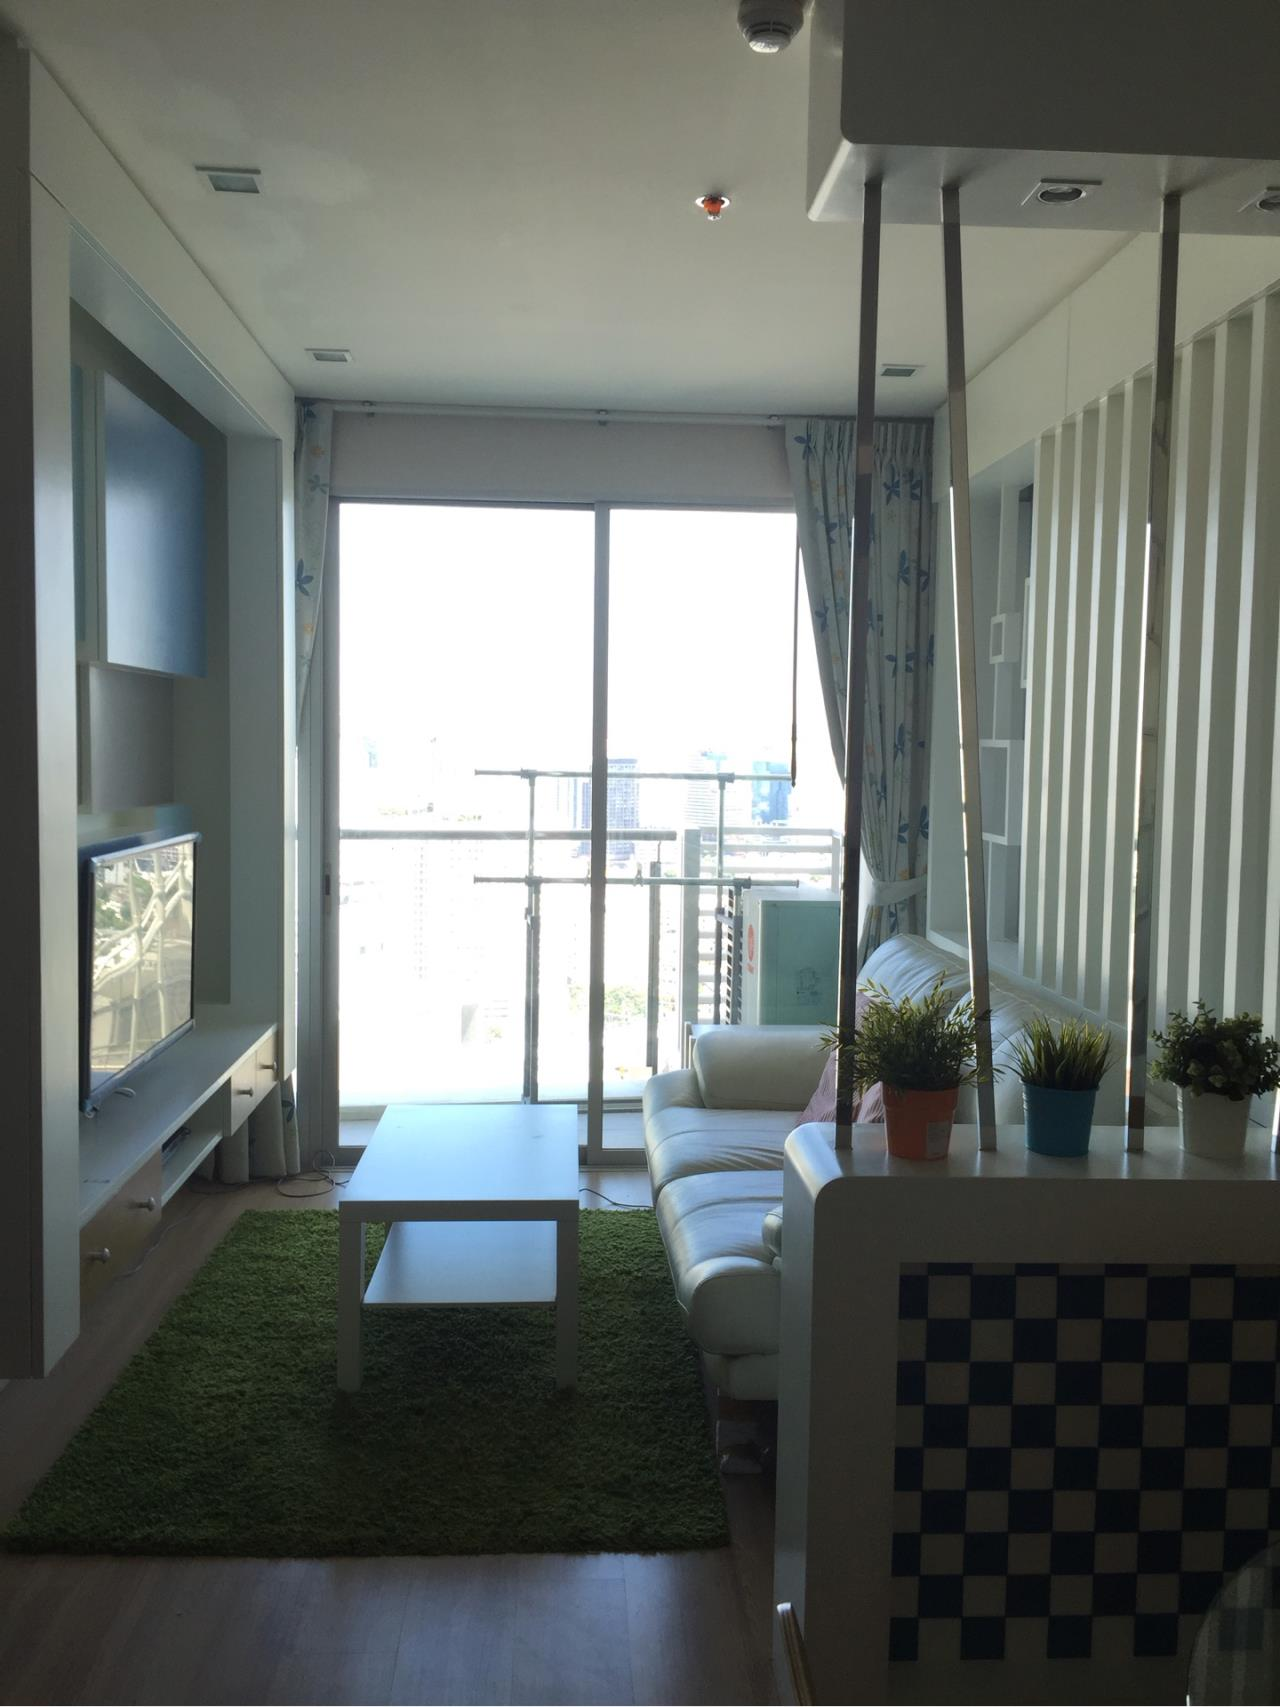 Quality Life Property Agency's R E N T ! ! [ SKY WALK ] 2 BR 60 SQ. M. NICE DECORATION 5